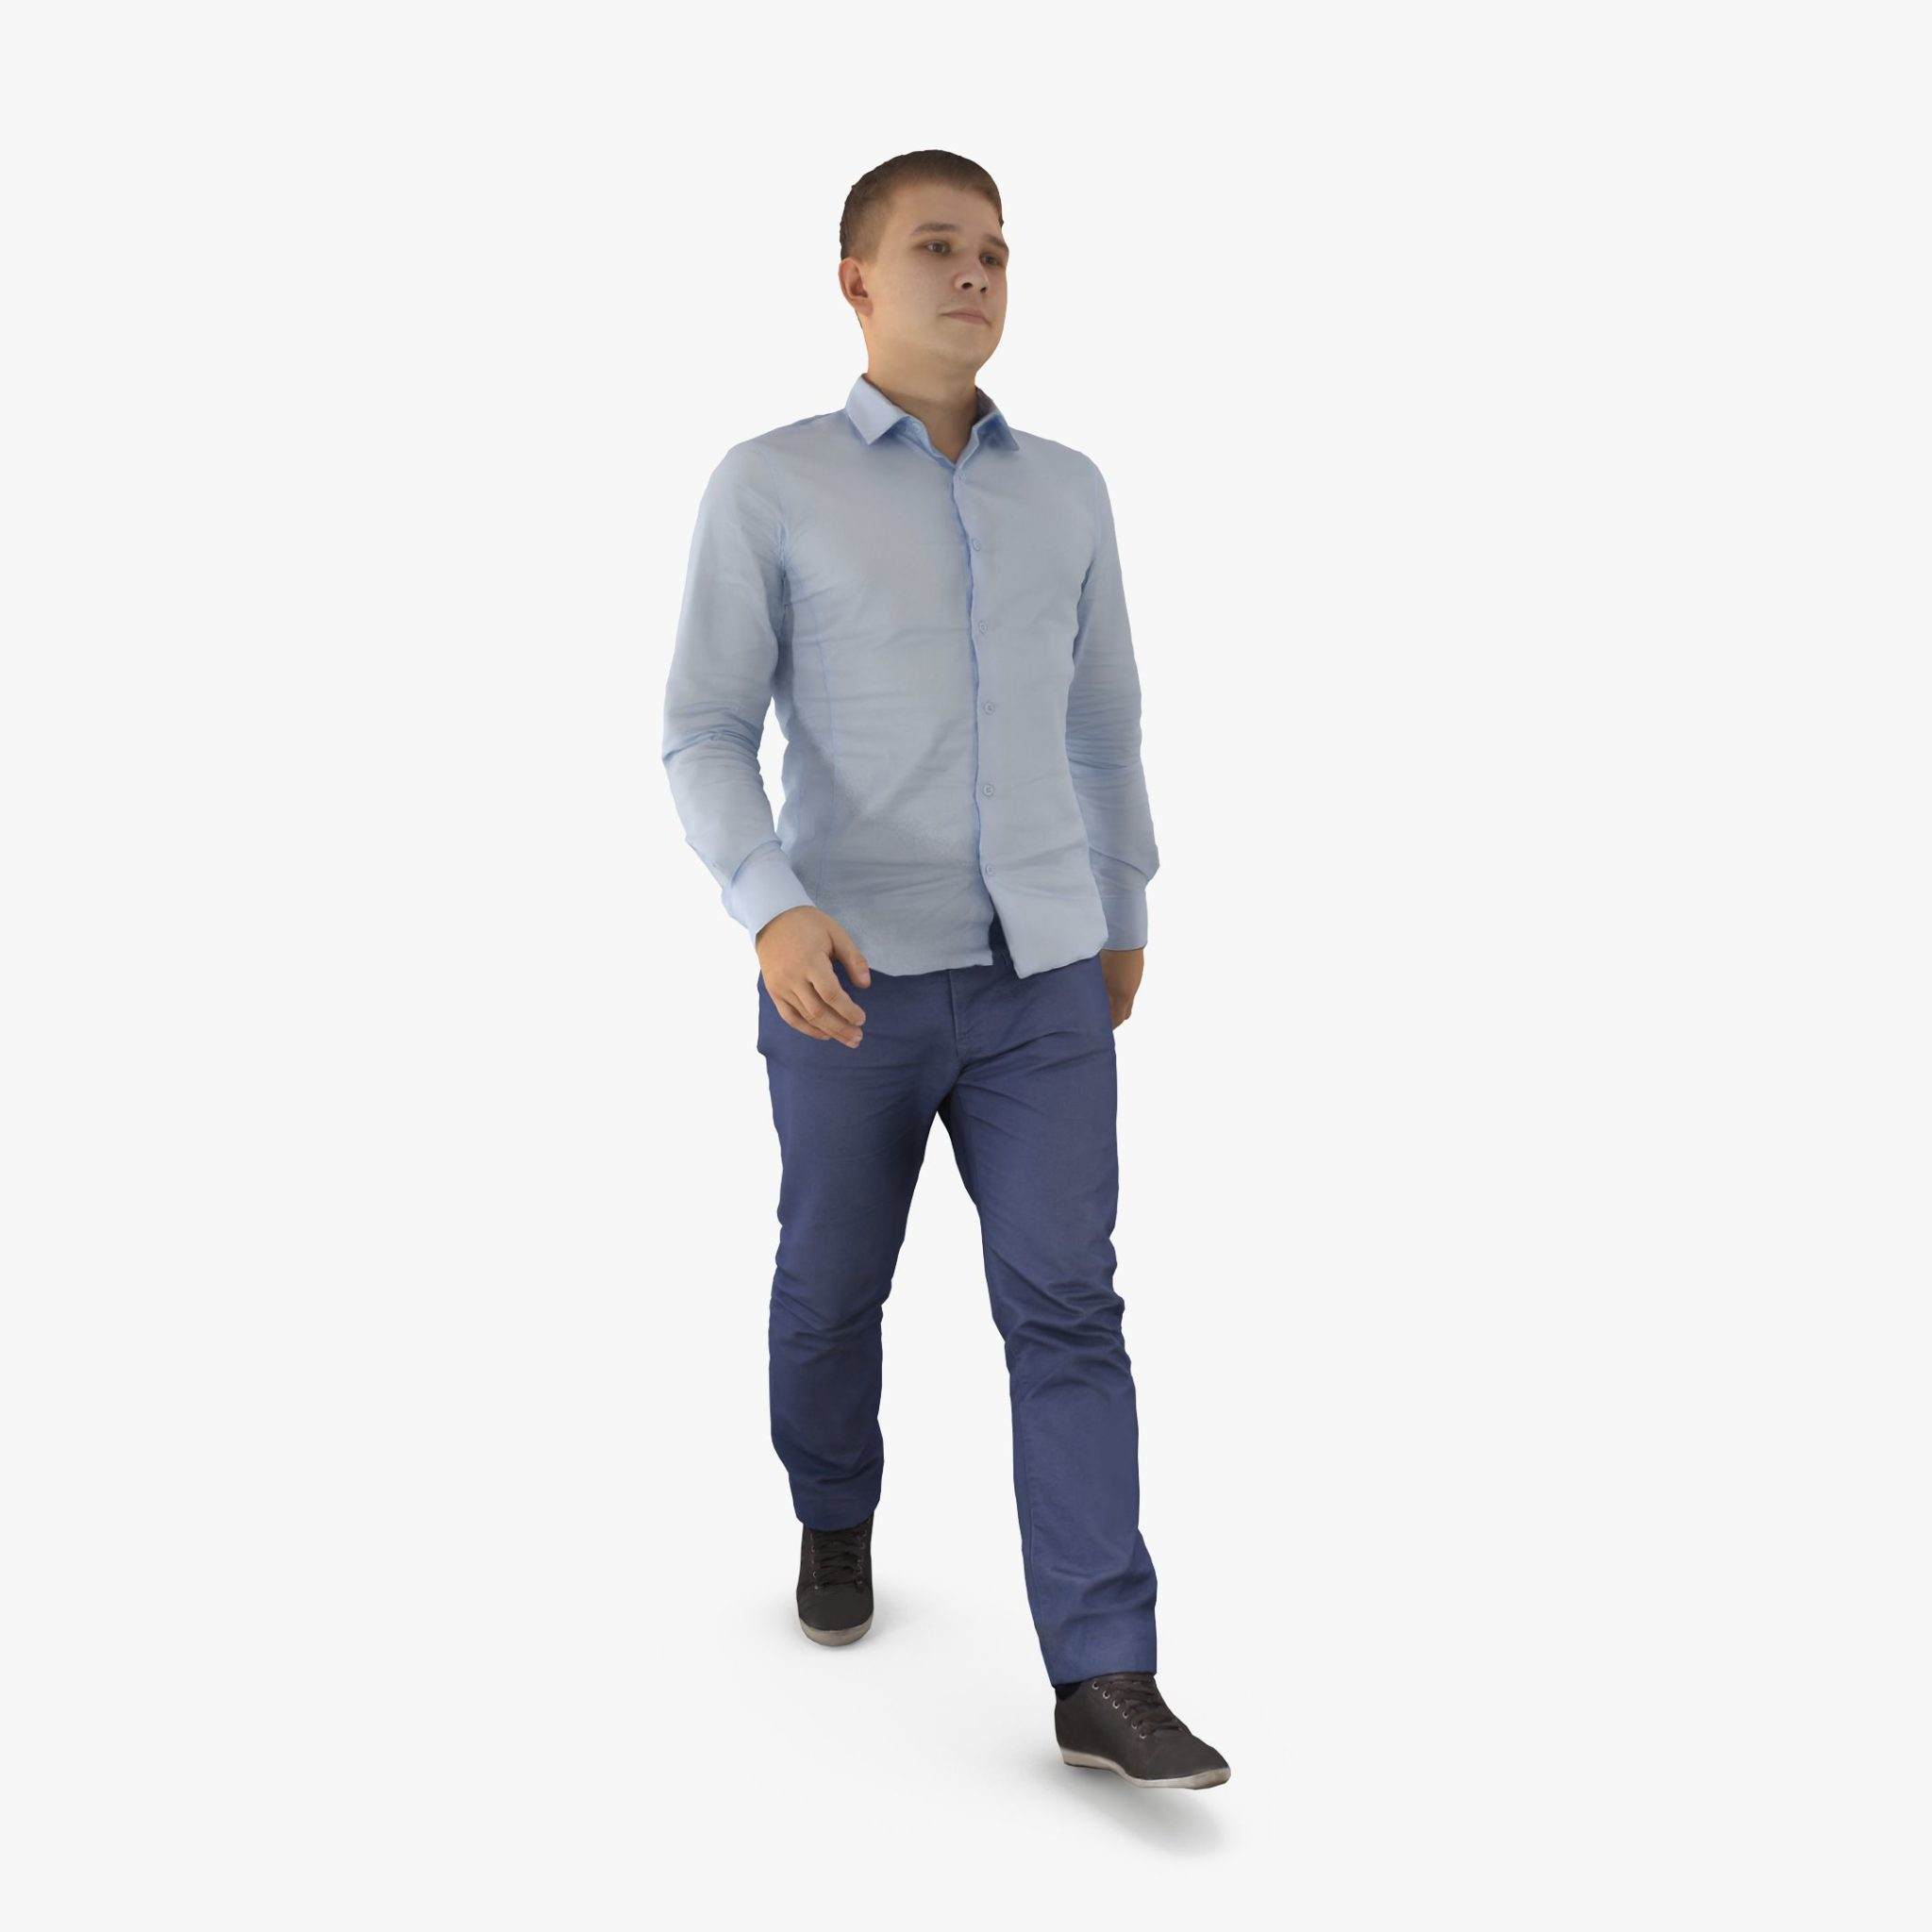 City Man Walking 3D Model | 3DTree Scanning Studio